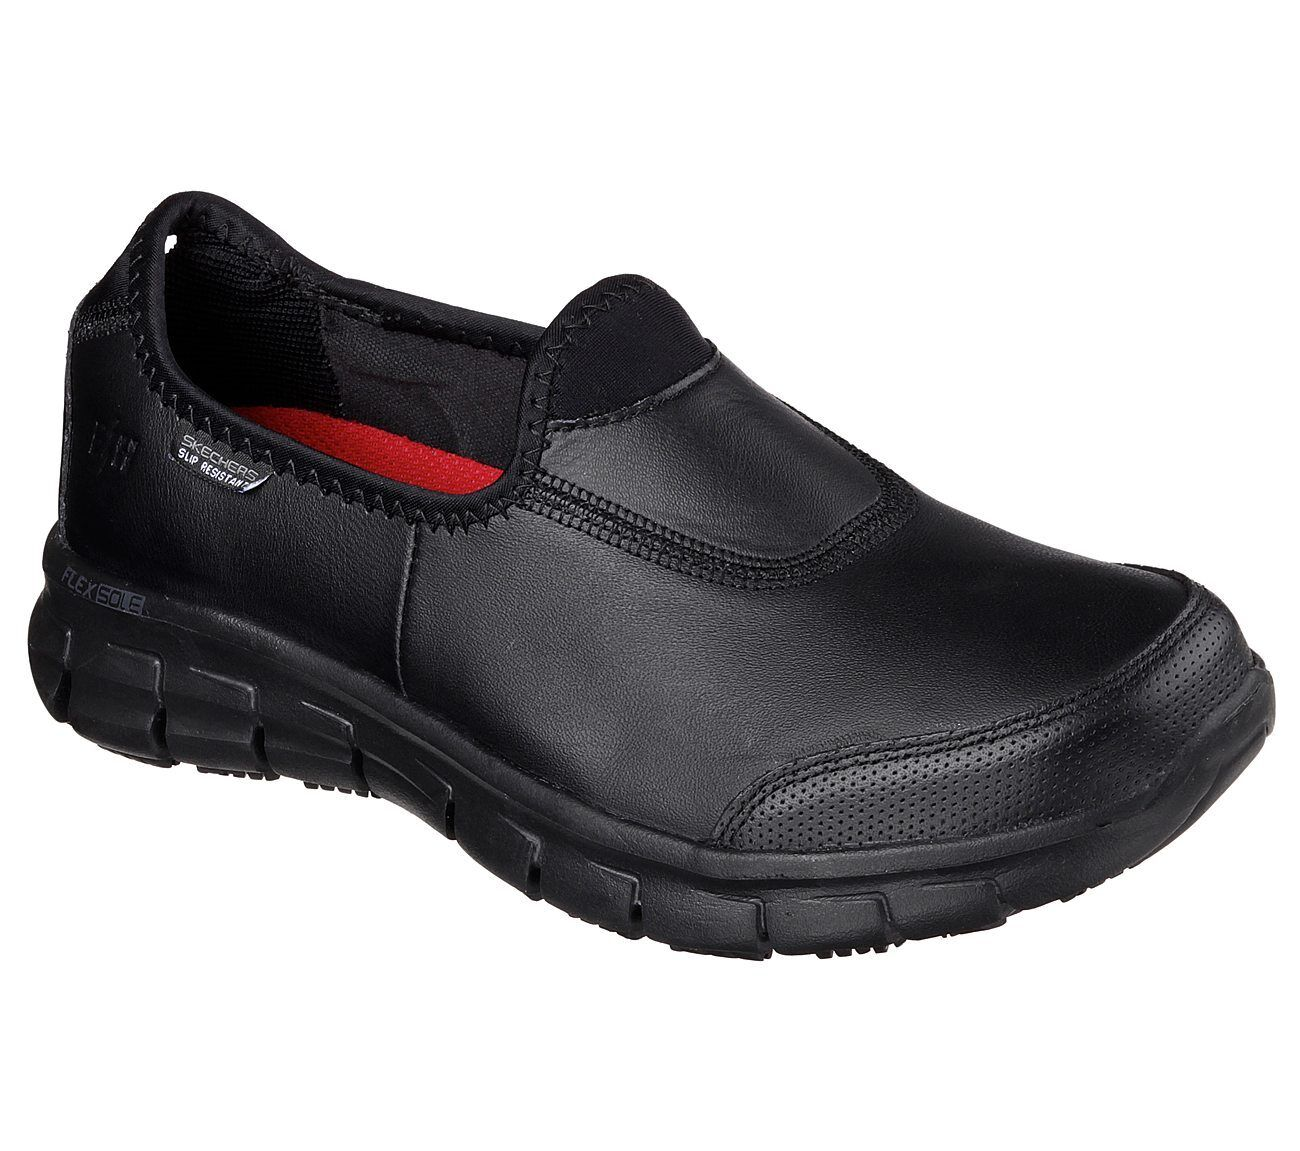 Skechers Work Relaxed Fit Sure Track Schuhes Damenschuhe Slip Resistant Memory Foam